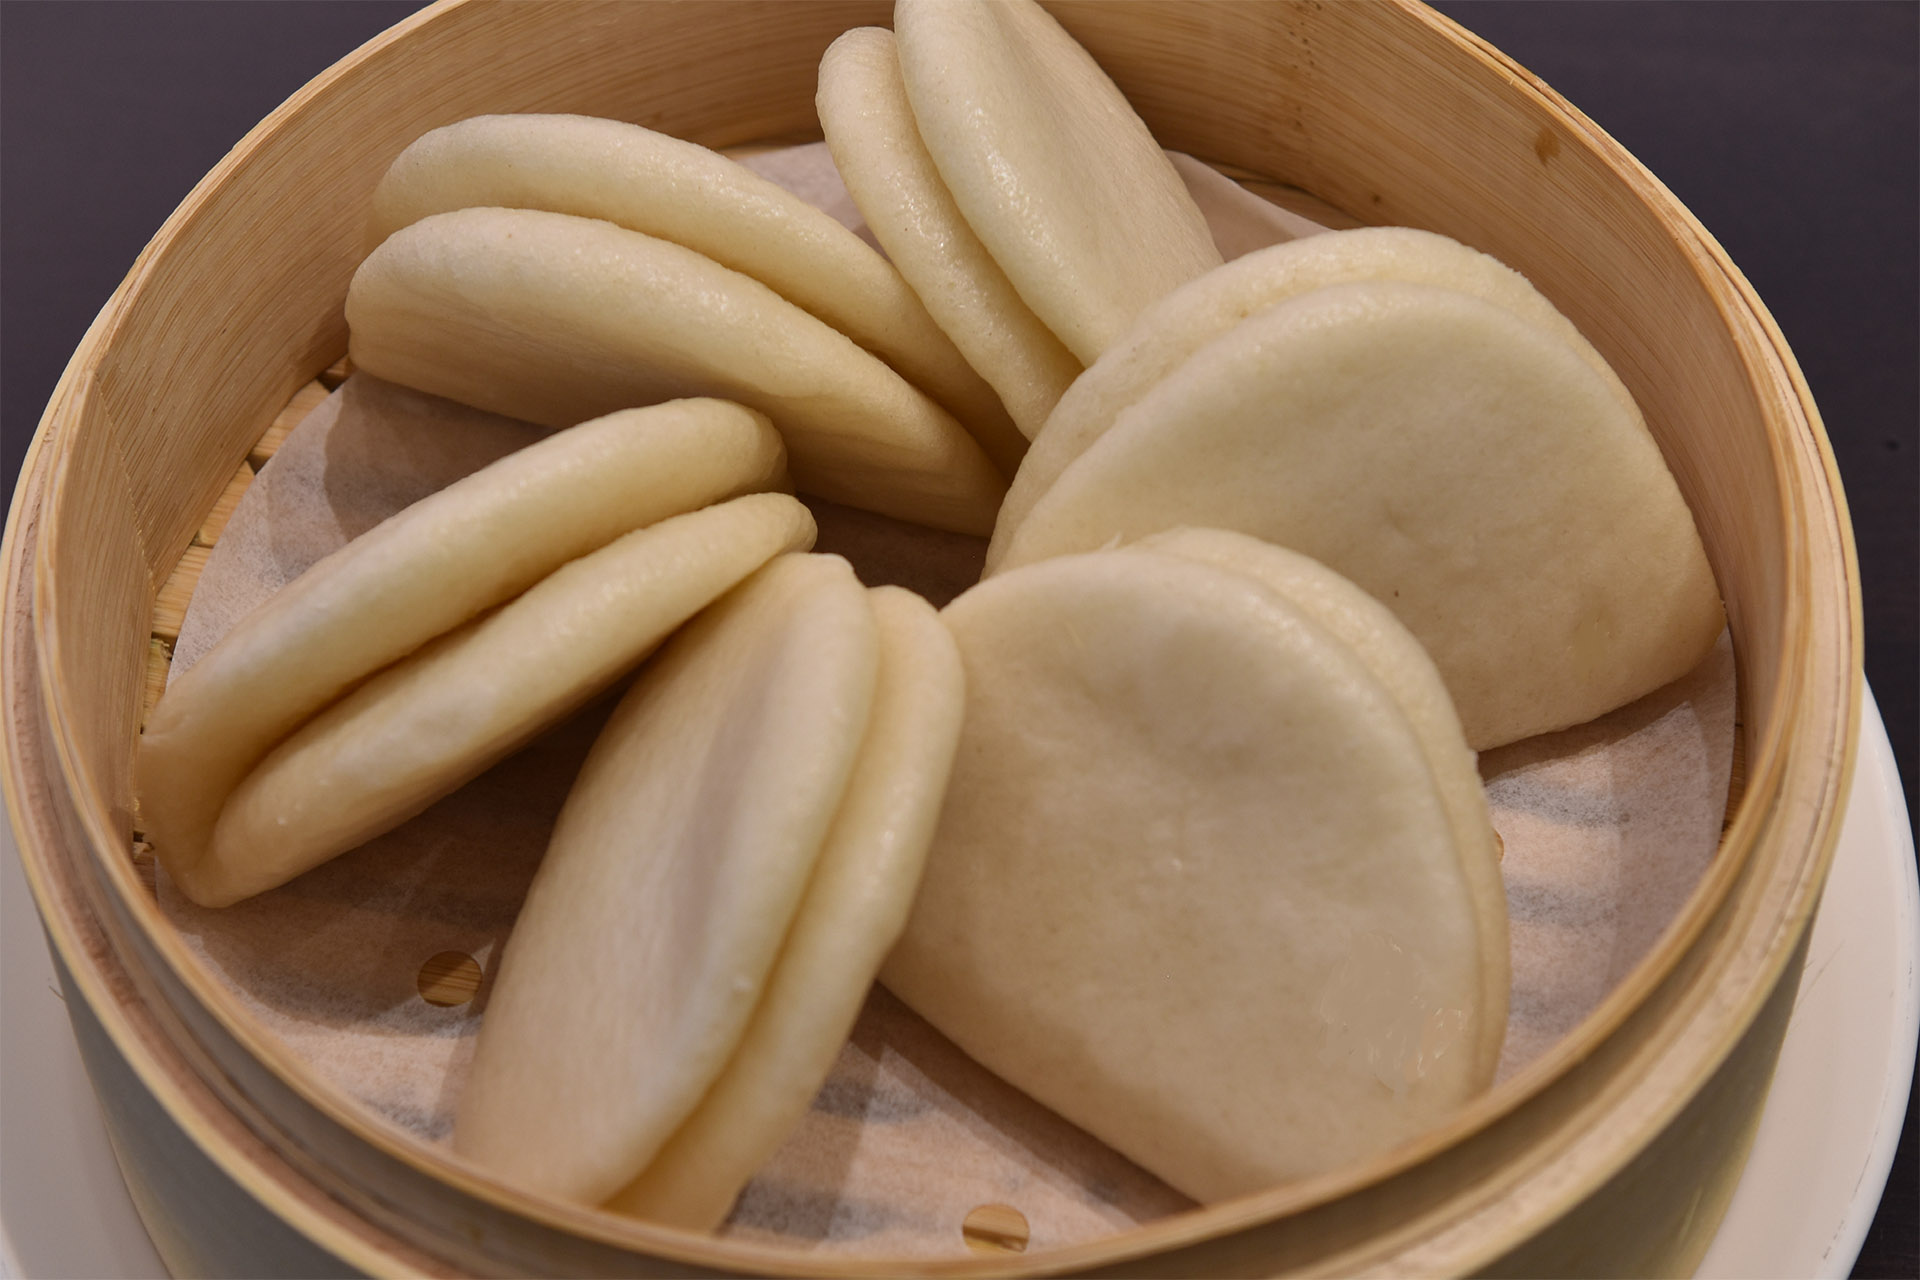 Steamed Bao Buns [6] at Lee Chen Asian Bistro